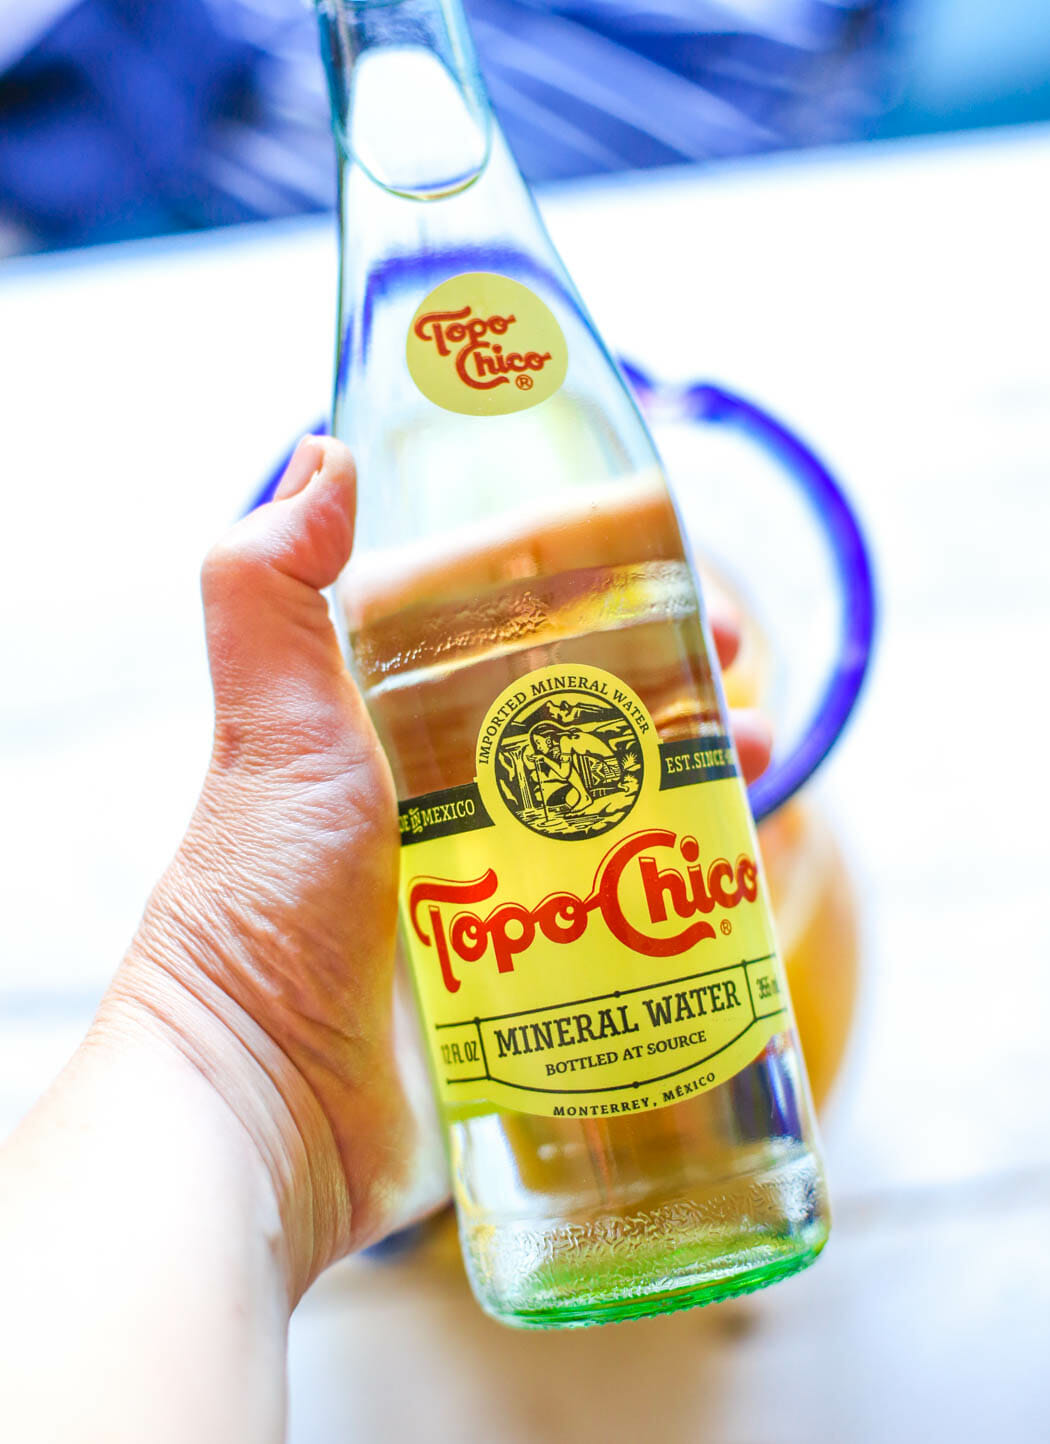 Bottle of Topo Chico